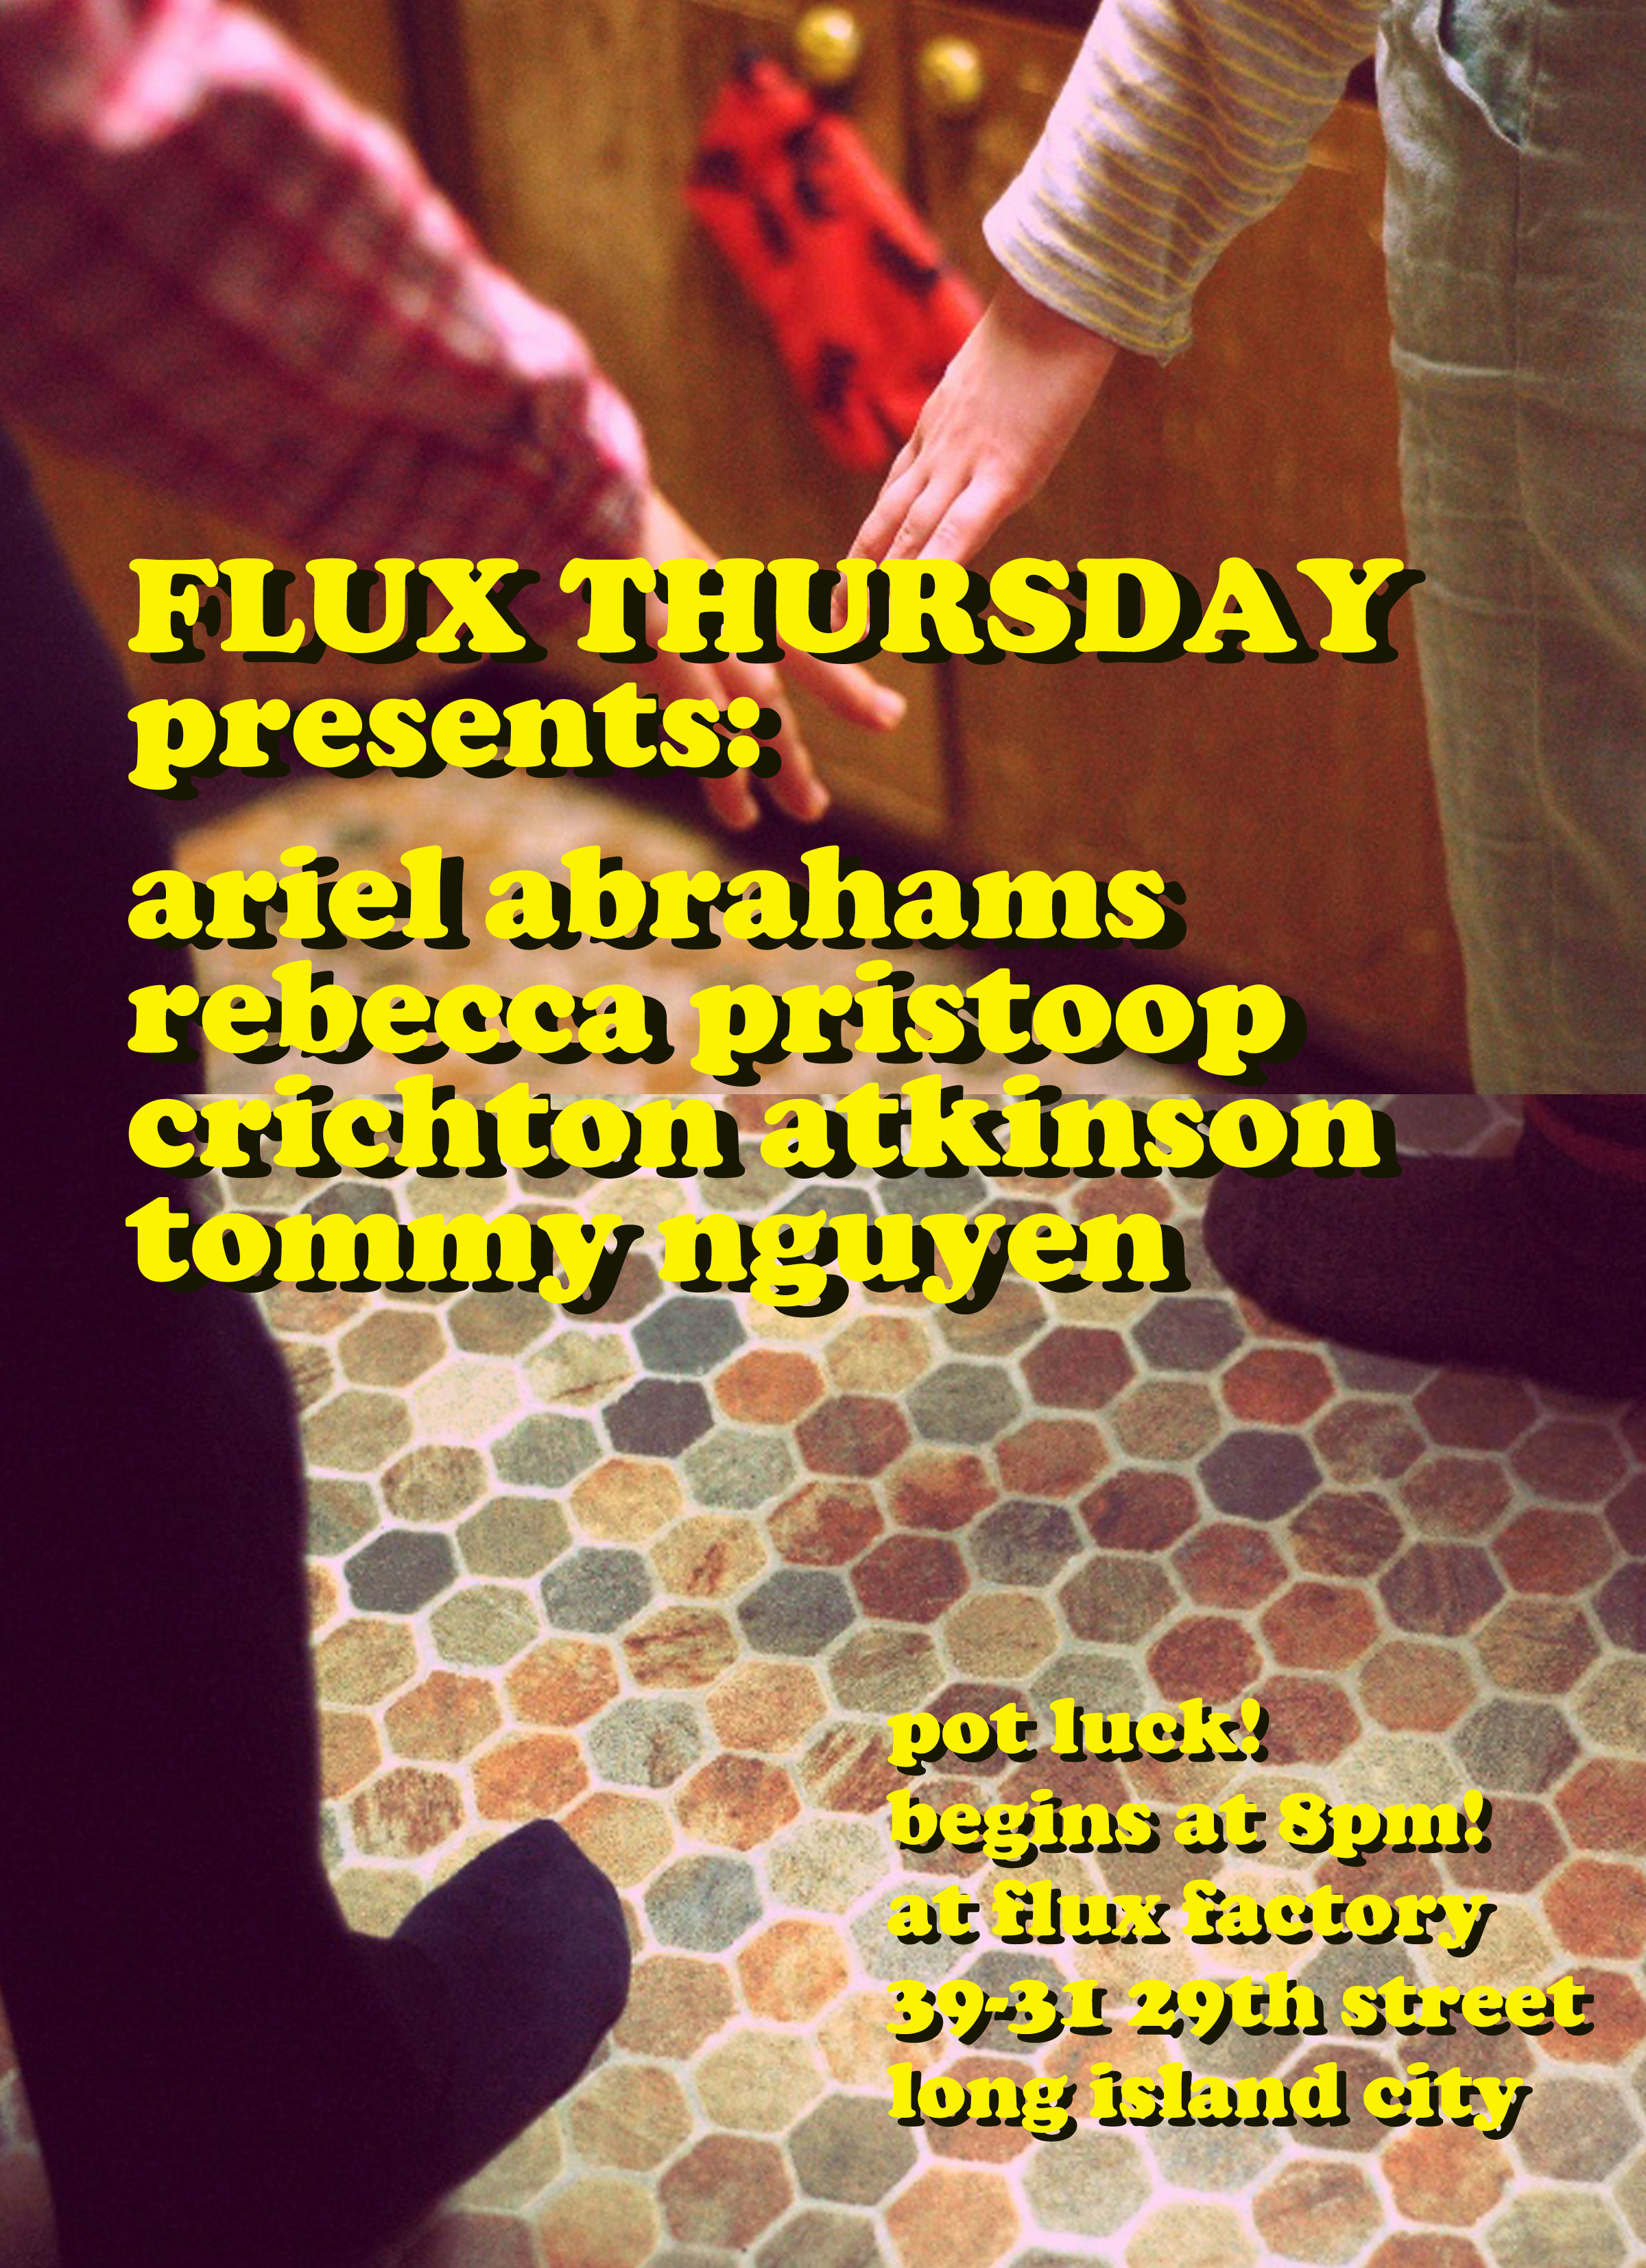 February Flux Thursday